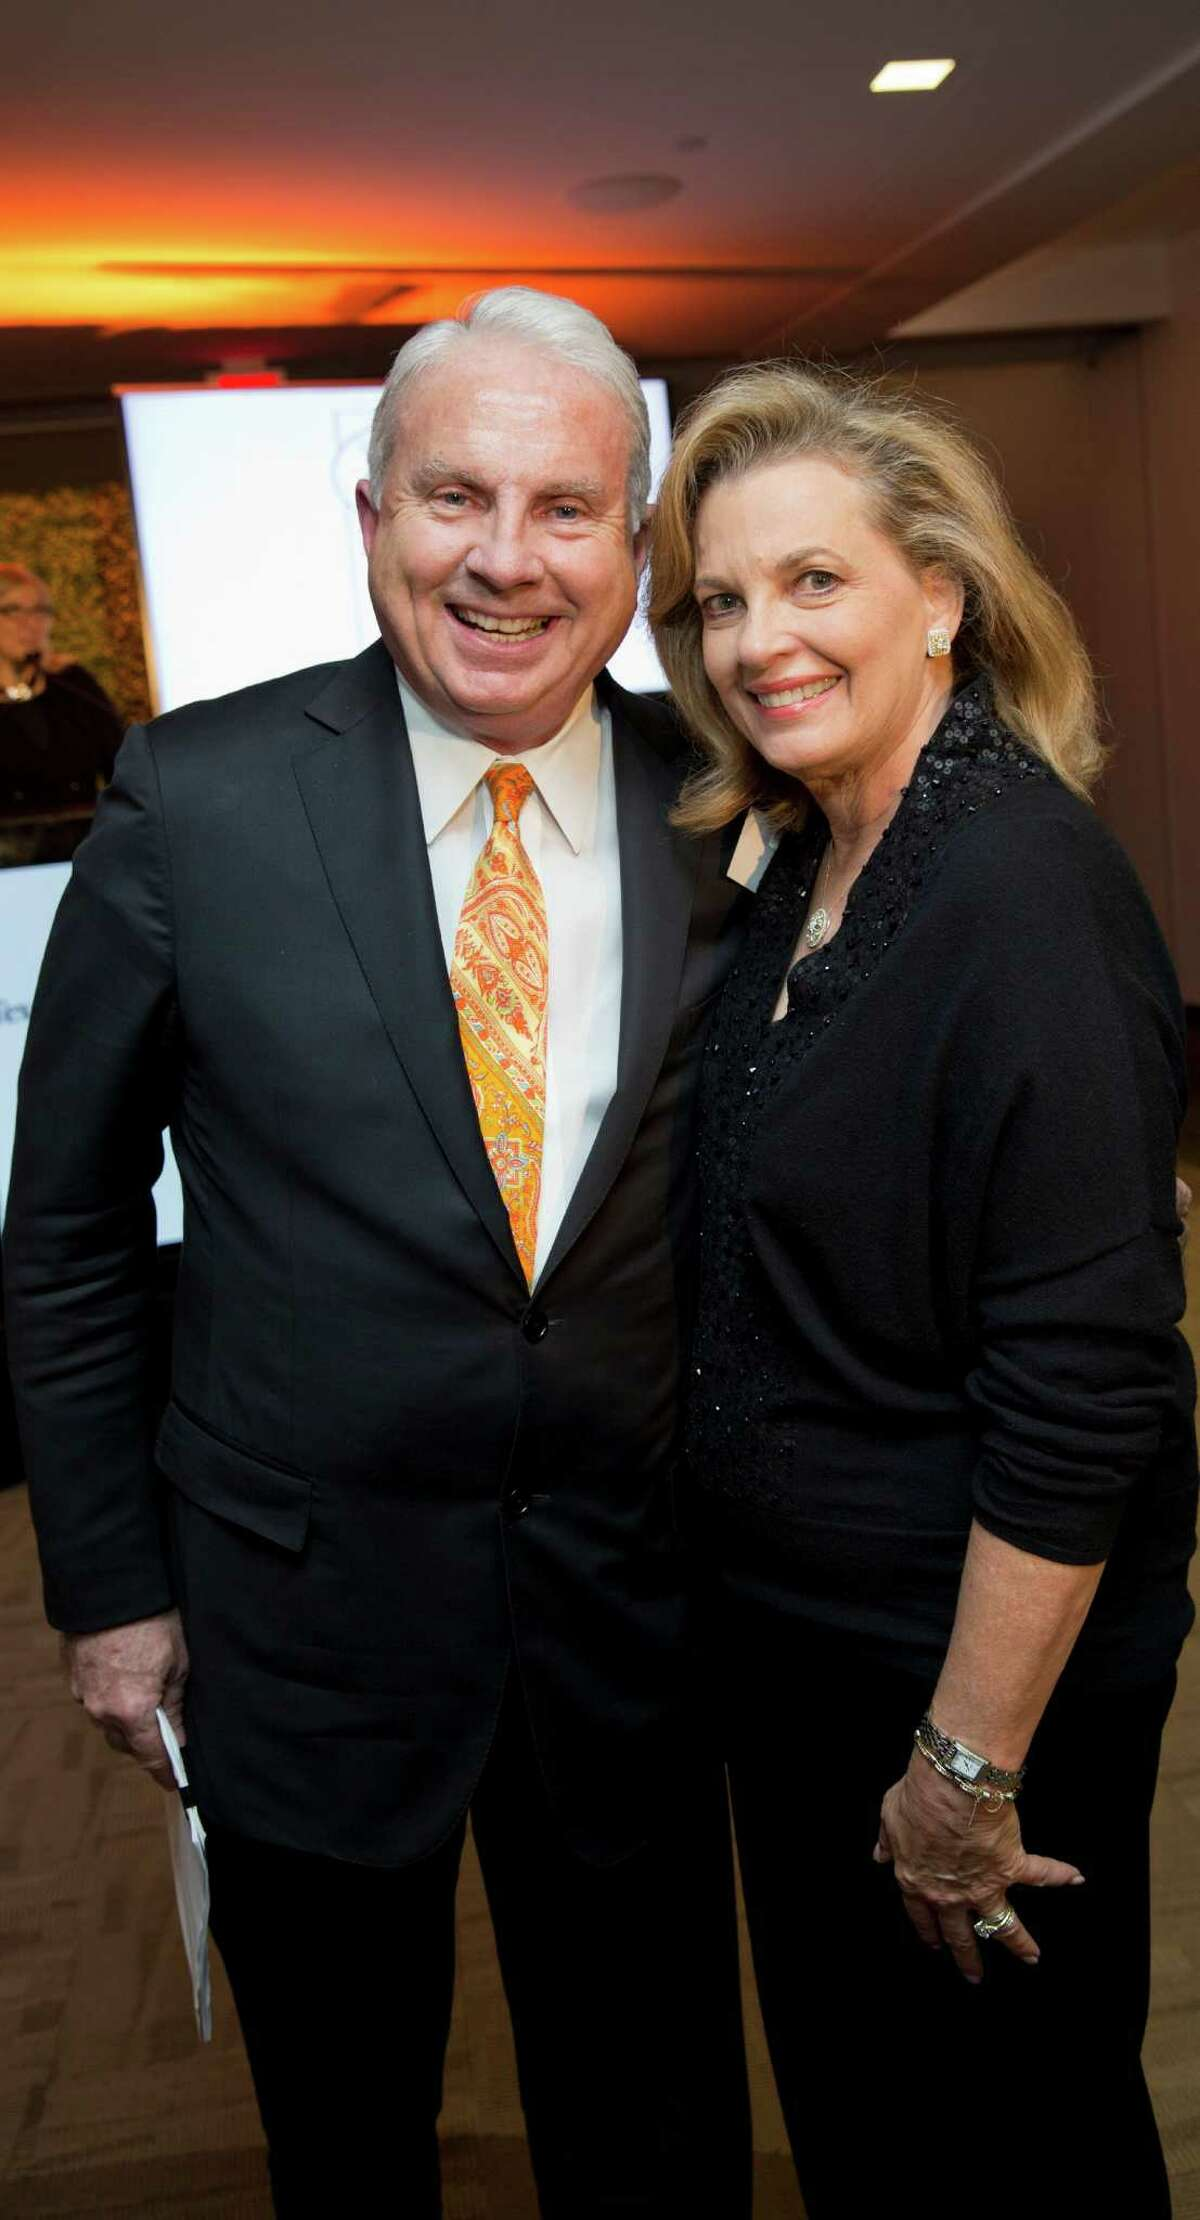 Mark Wallace, president and CEO of Texas Children's Hospital, and Memorial resident Nancy Gordon at the What's Up Doc event in November. Mark Wallace, president and CEO of Texas Children's Hospital, and Memorial resident Nancy Gordon at the What's Up Doc event in November.